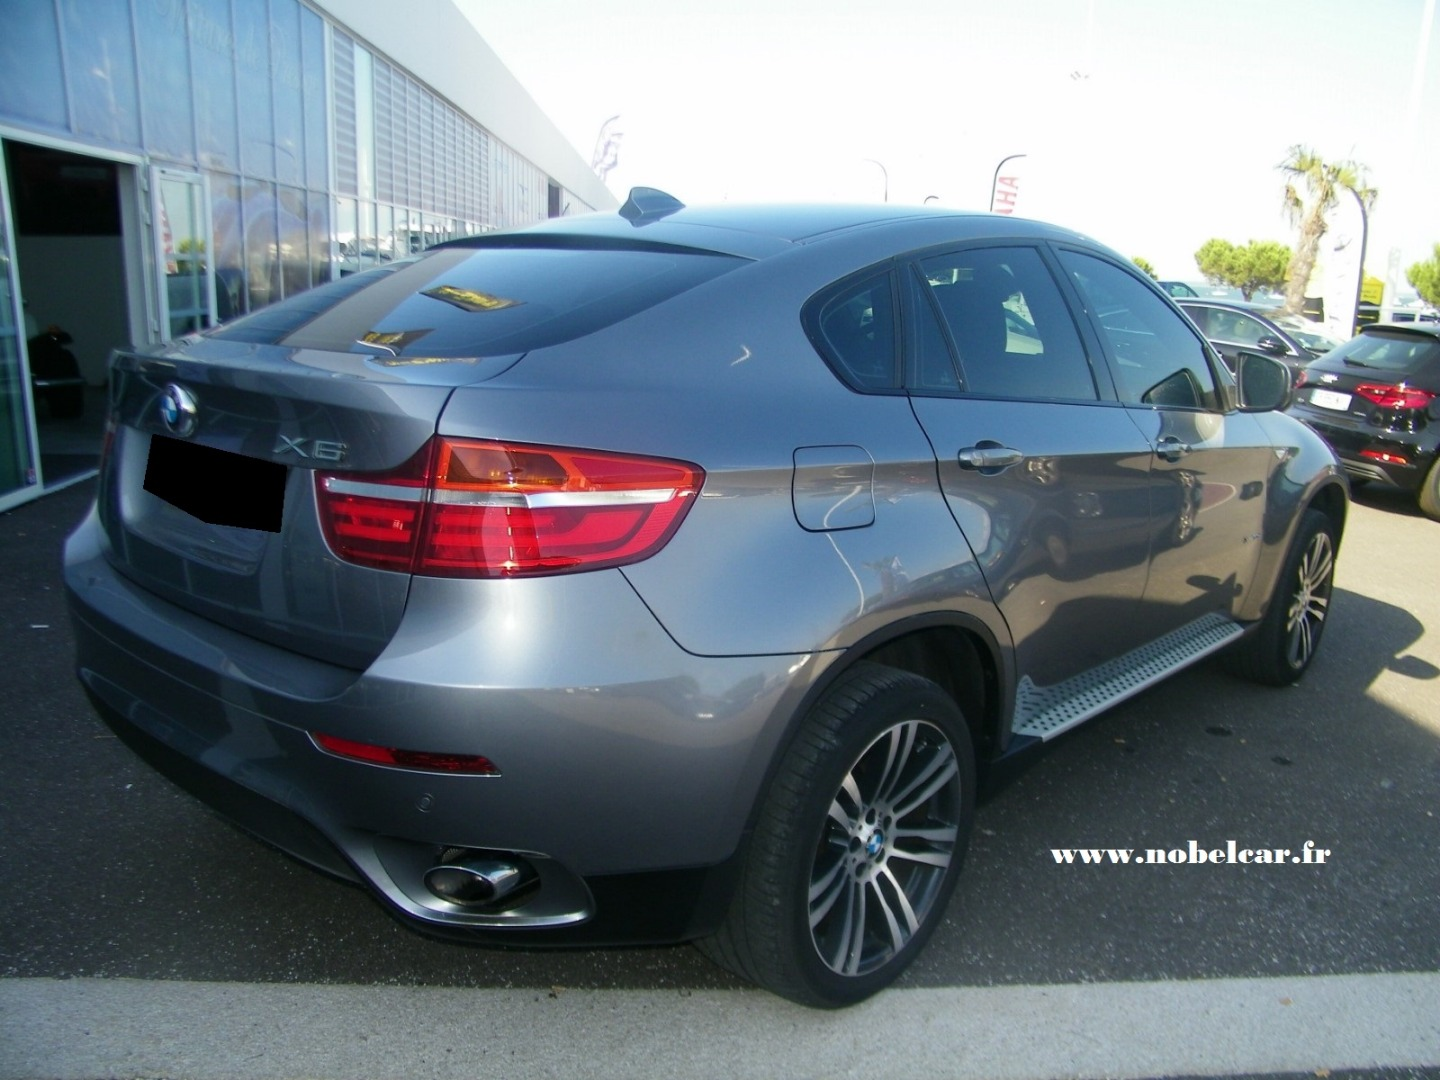 BMW X6 (E71) XDRIVE 30D 245 CV M SPORT ULTIMATE D' OCCASION GIRONDE 33.